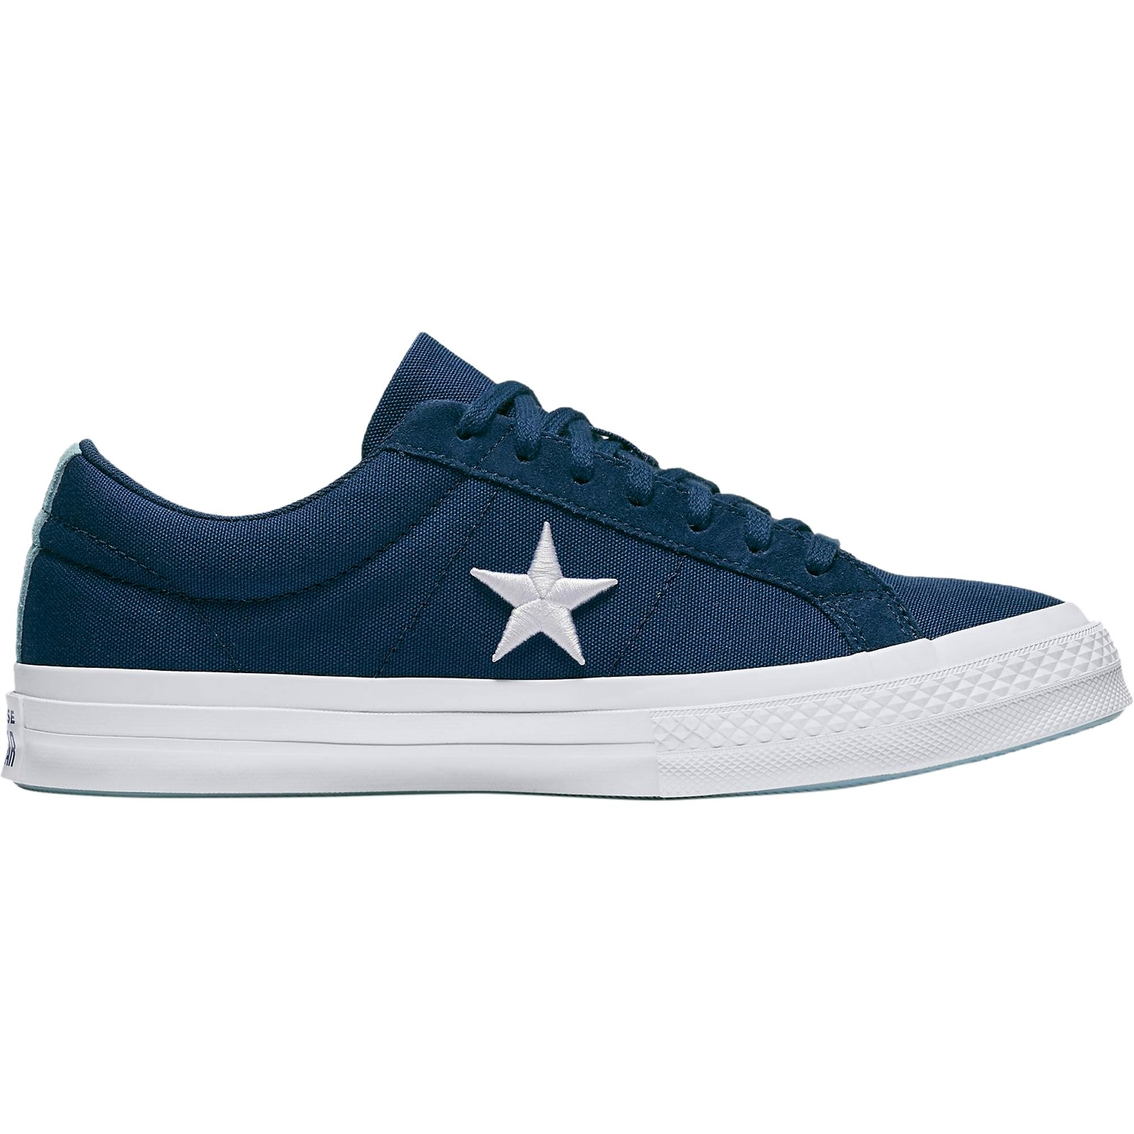 fdd027a135c Converse Men s One Star Country Pride Low Top Shoes